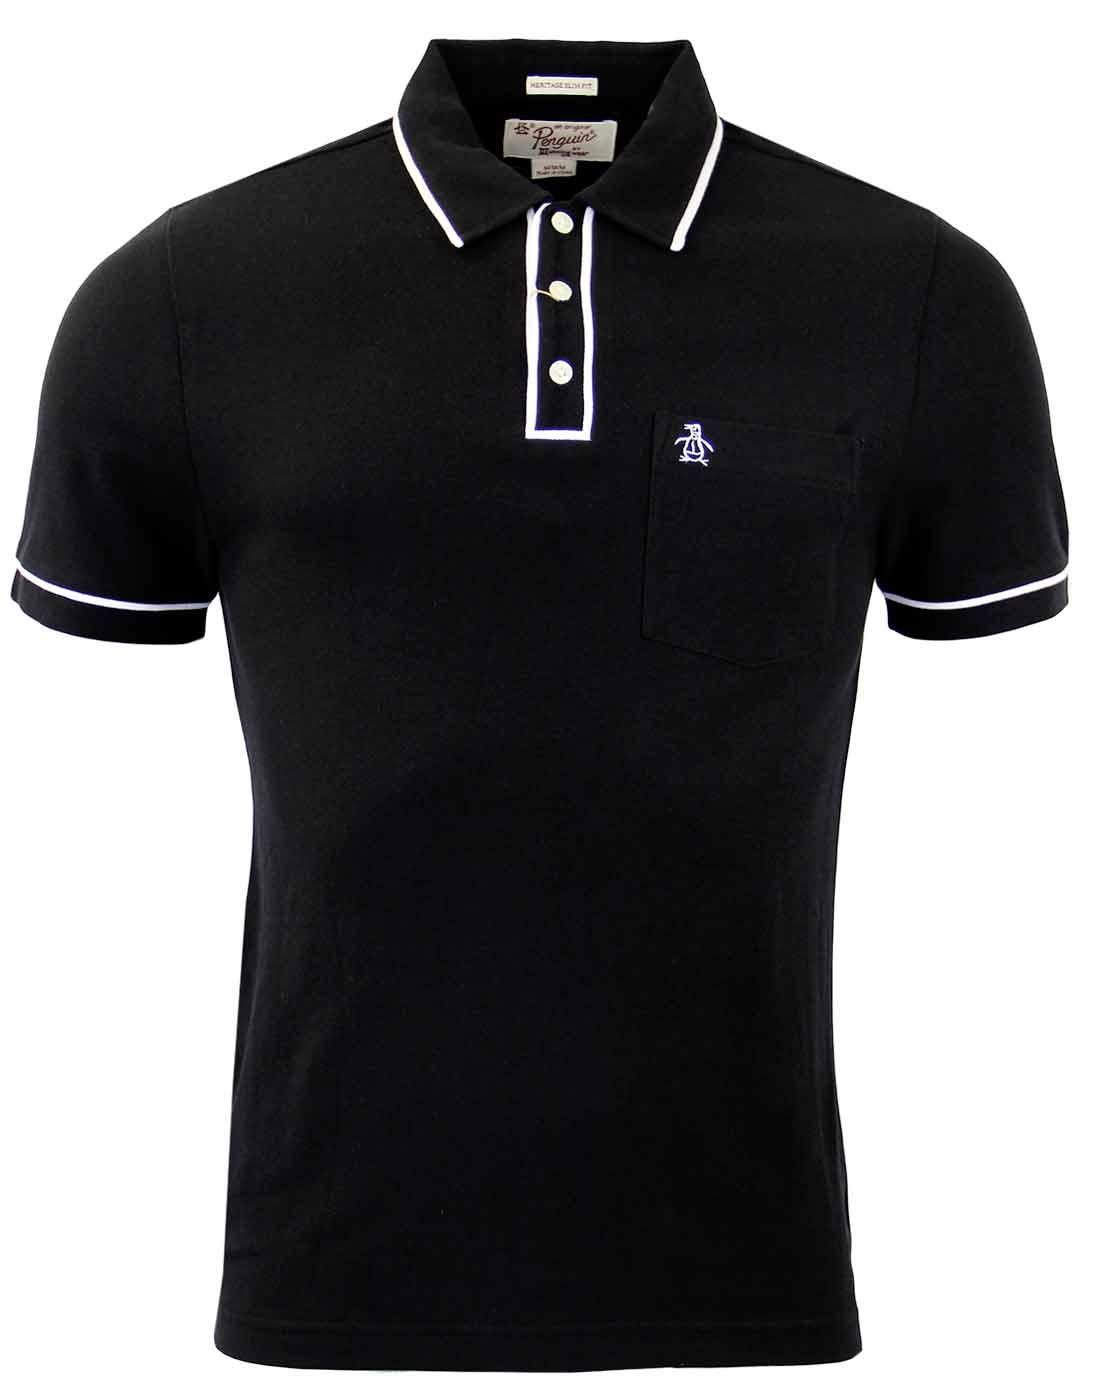 c2a4d5bec Brand: Original Penguin by Munsingwear. Key Points: Original Penguin True  Black Earl Polo Shirt wit